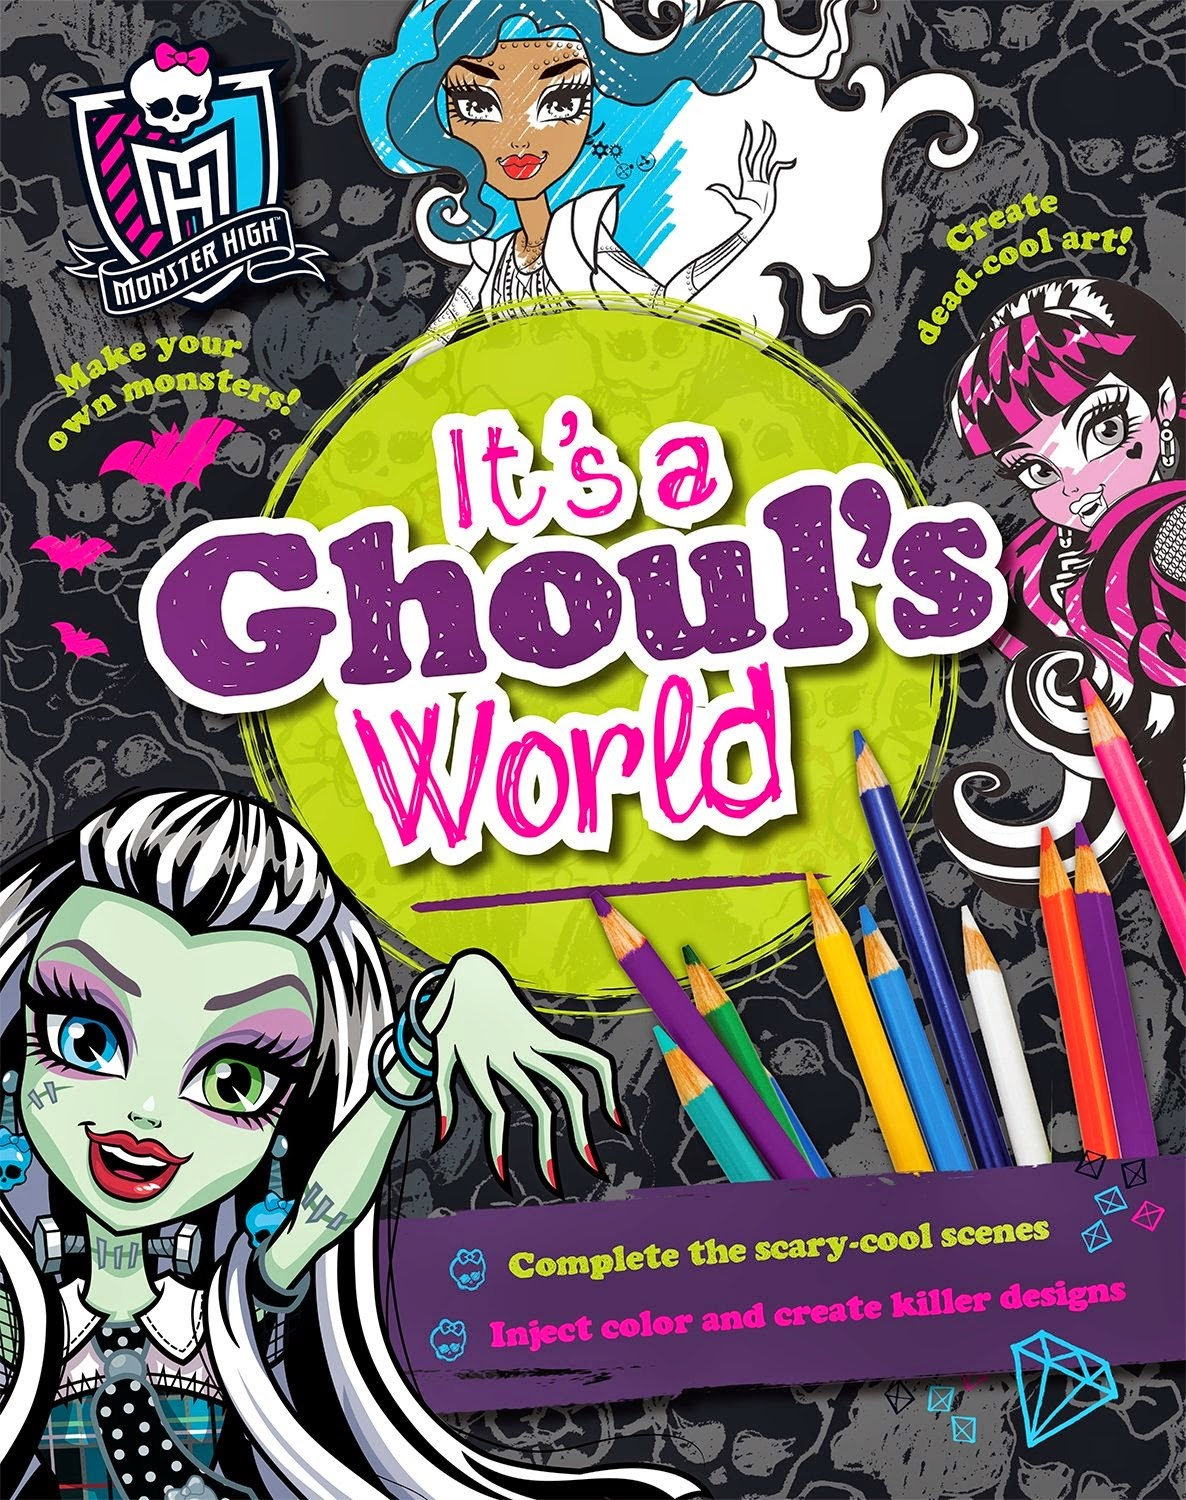 Monster High Libros Monstruo Perfectamente Imperfectos Nuevos Quotlibros Mh